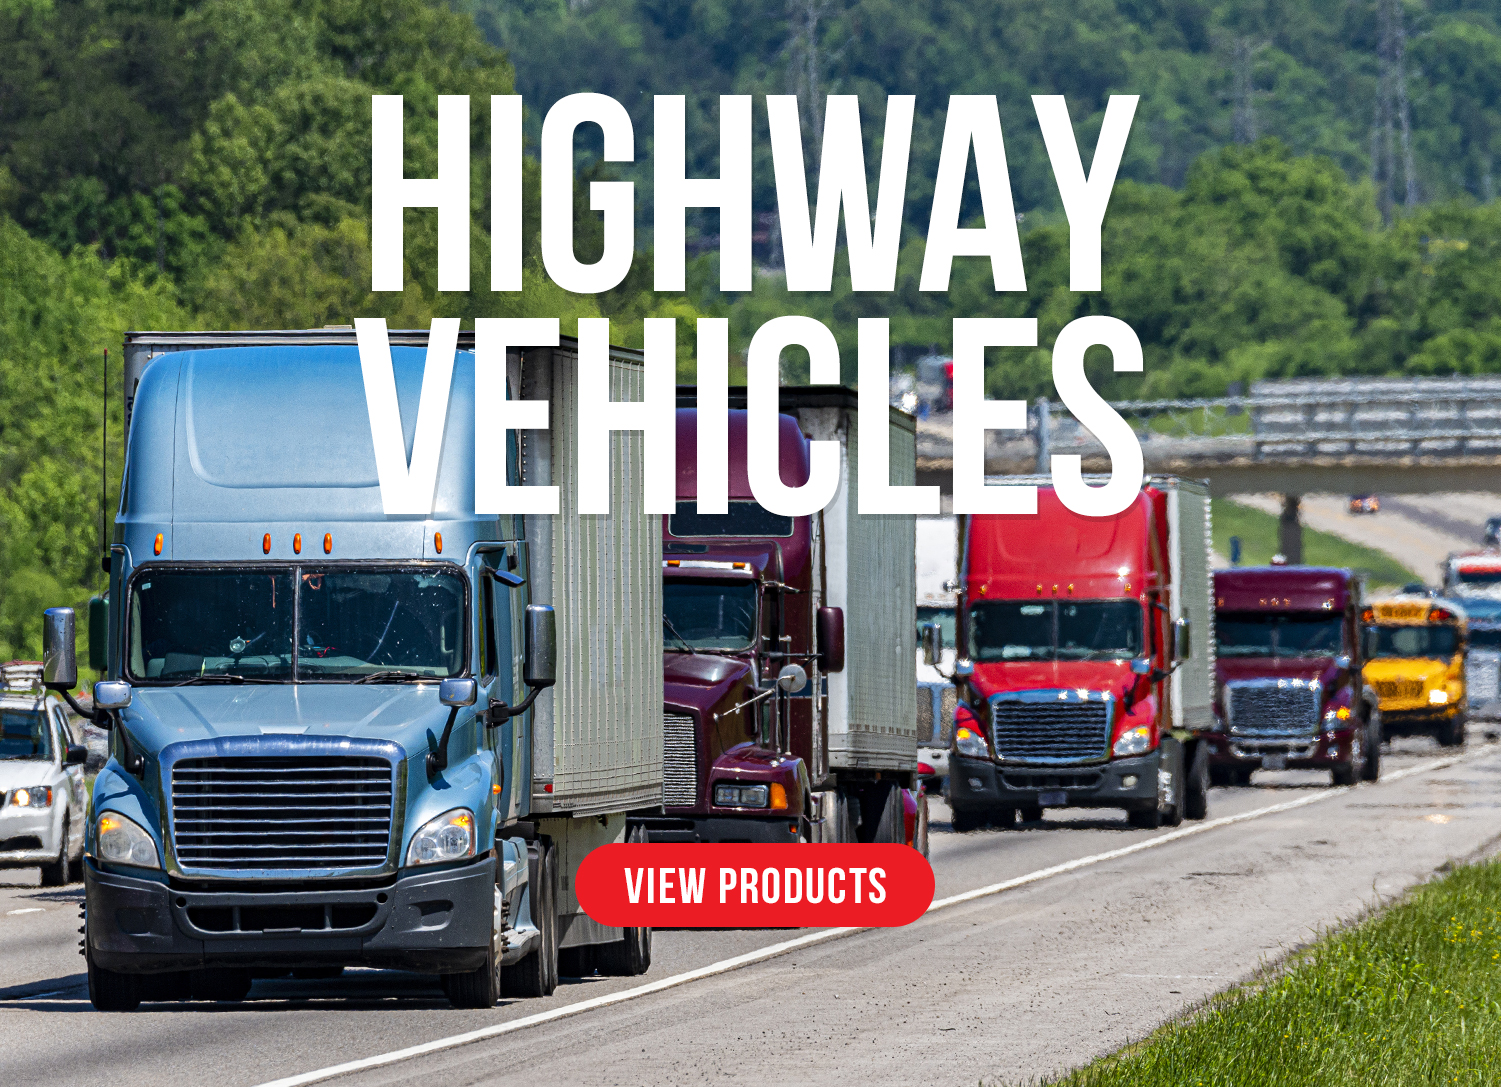 Highway Vehicles